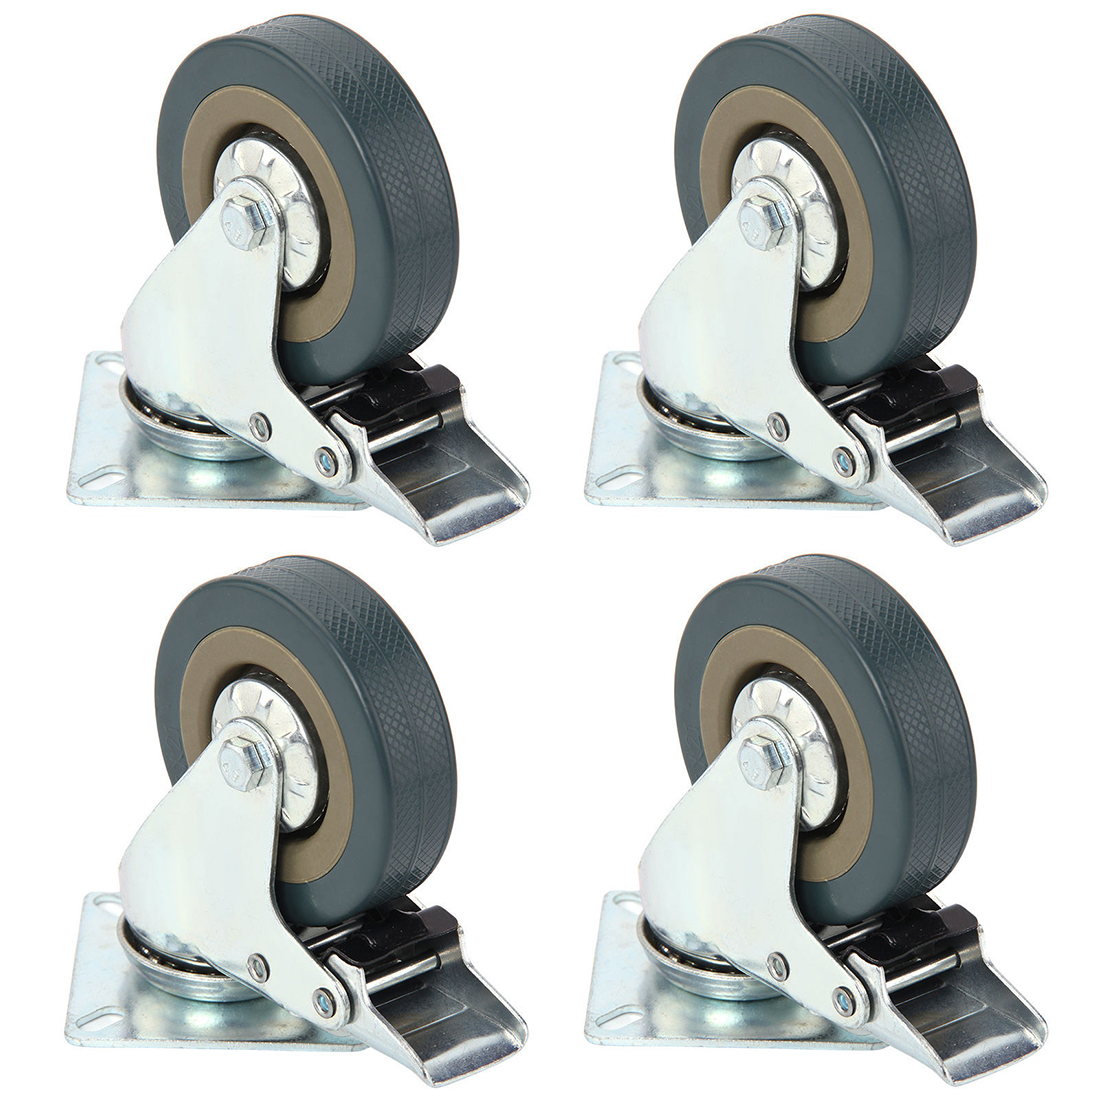 Set of Heavy Duty 65x21mm Rubber Swivel Castor Wheels Trolley Caster Brake 40KGModel:4 with brake индукционная варочная плитка kitfort кт 107